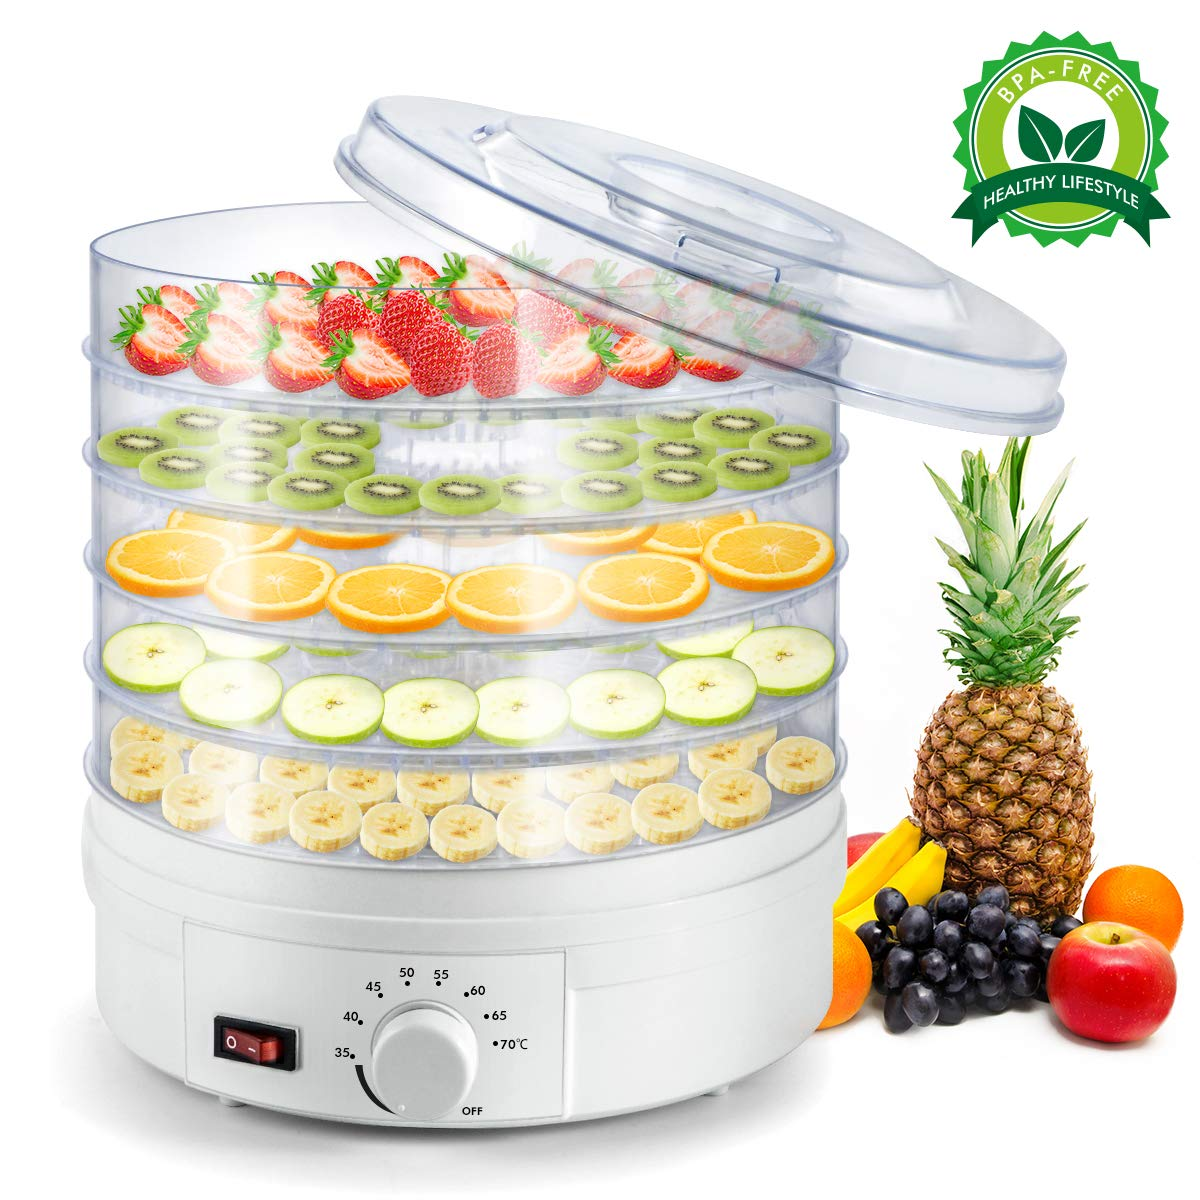 Sunix Electric Food Fruit Dehydrator, Portable Countertop Adjustable Thermostat, BPA-Free 5-Tray,for Jerky, Fruit, Vegetables & more, White by Sunix